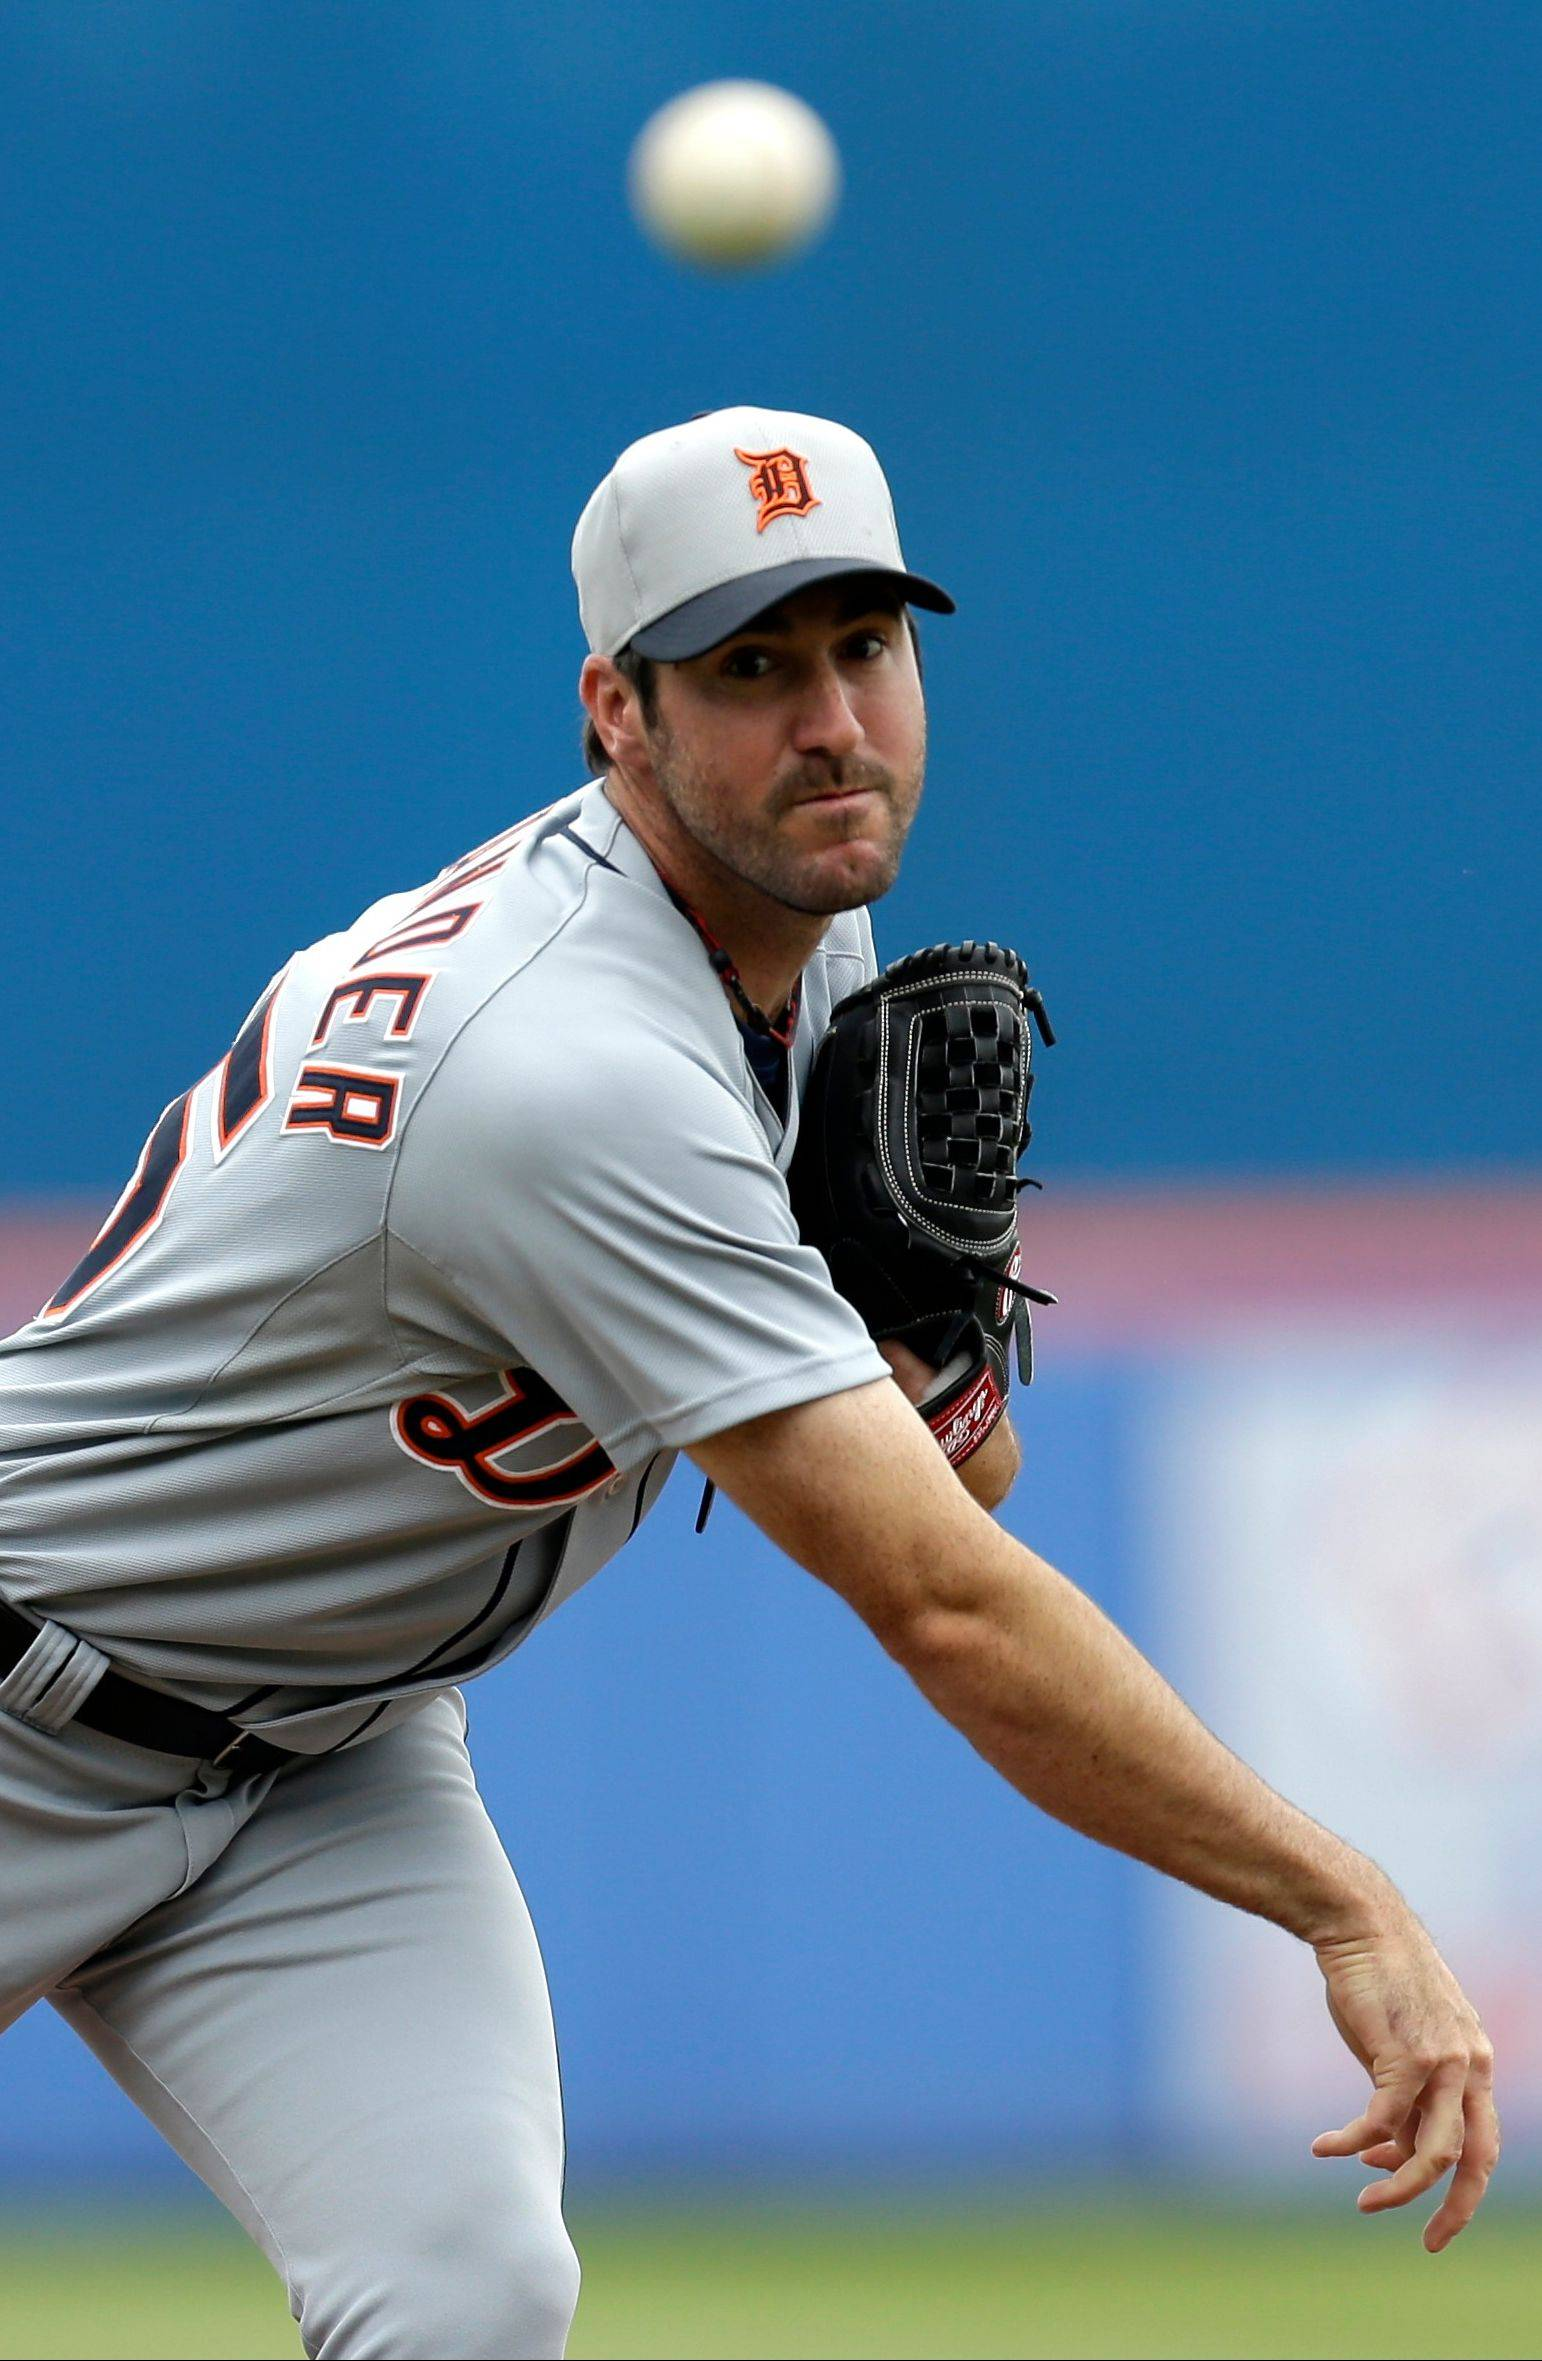 Detroit Tigers pitcher Justin Verlander warms up Friday in an exhibition game. The Tigers are clearly the AL Central's most talented team on paper, Scot Gregor says, and Verlander is widely thought to be the best starting pitcher in the game.